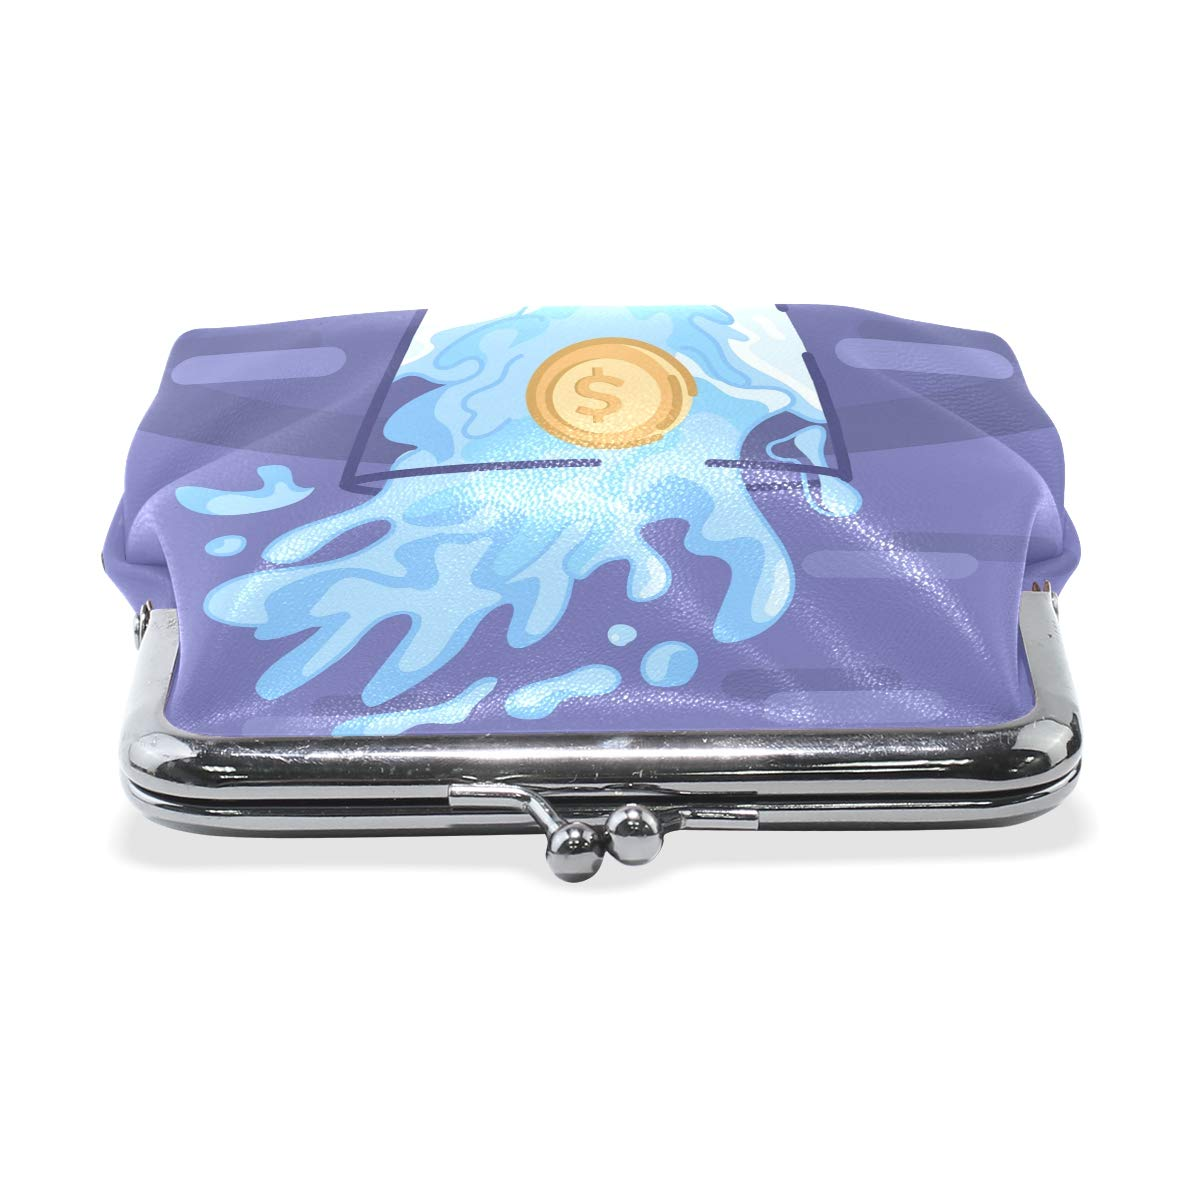 LALATOP Impact On Water Womens Coin Pouch Purse wallet Card Holder Clutch Handbag